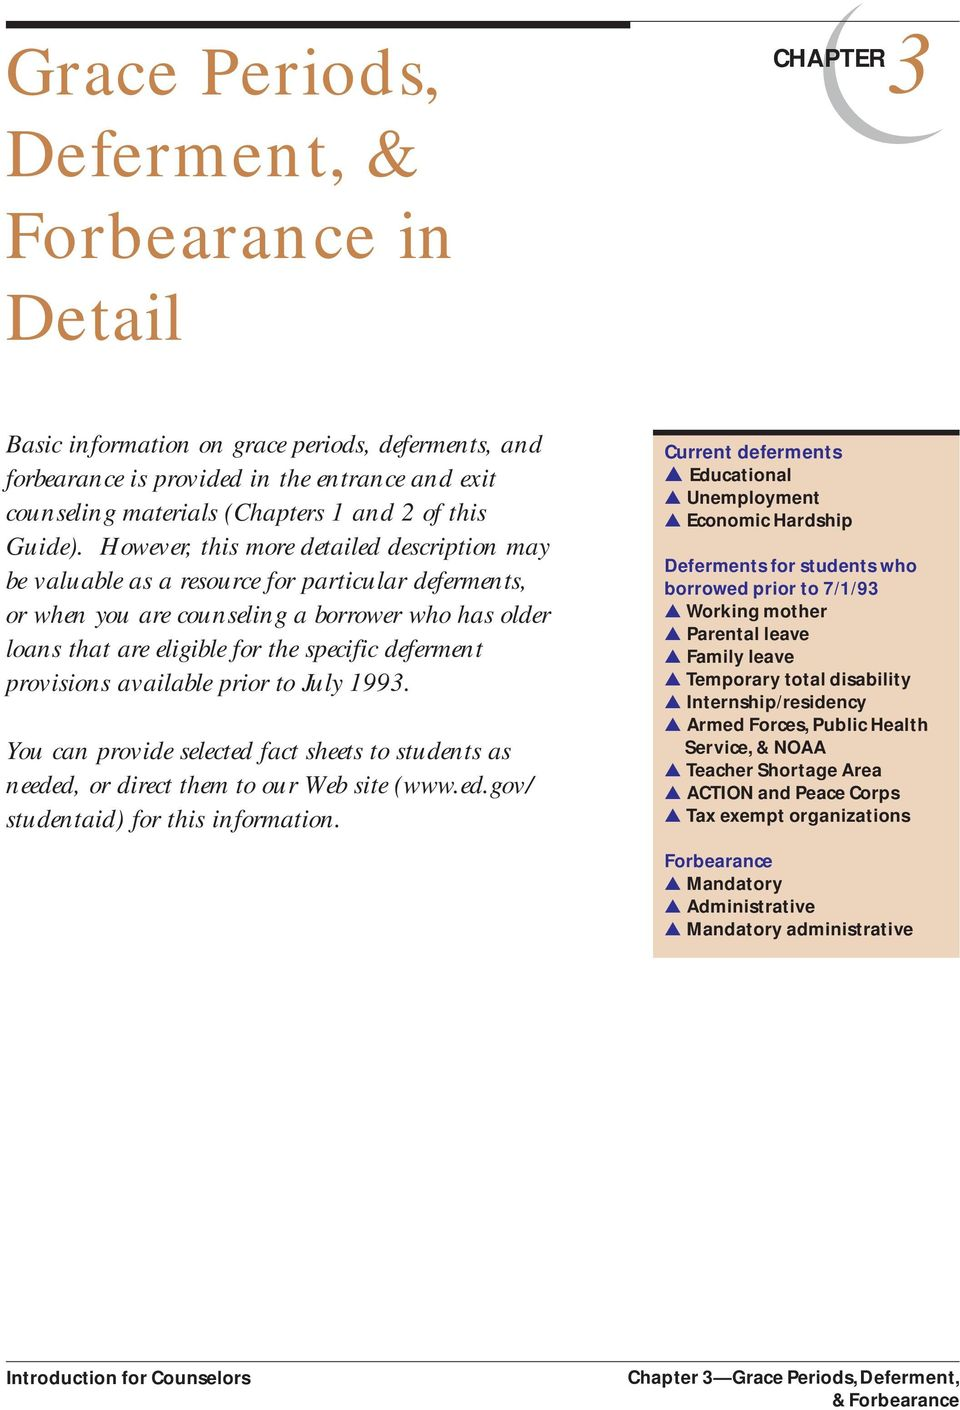 Grace Periods, Deferment, & Forbearance in Detail - PDF